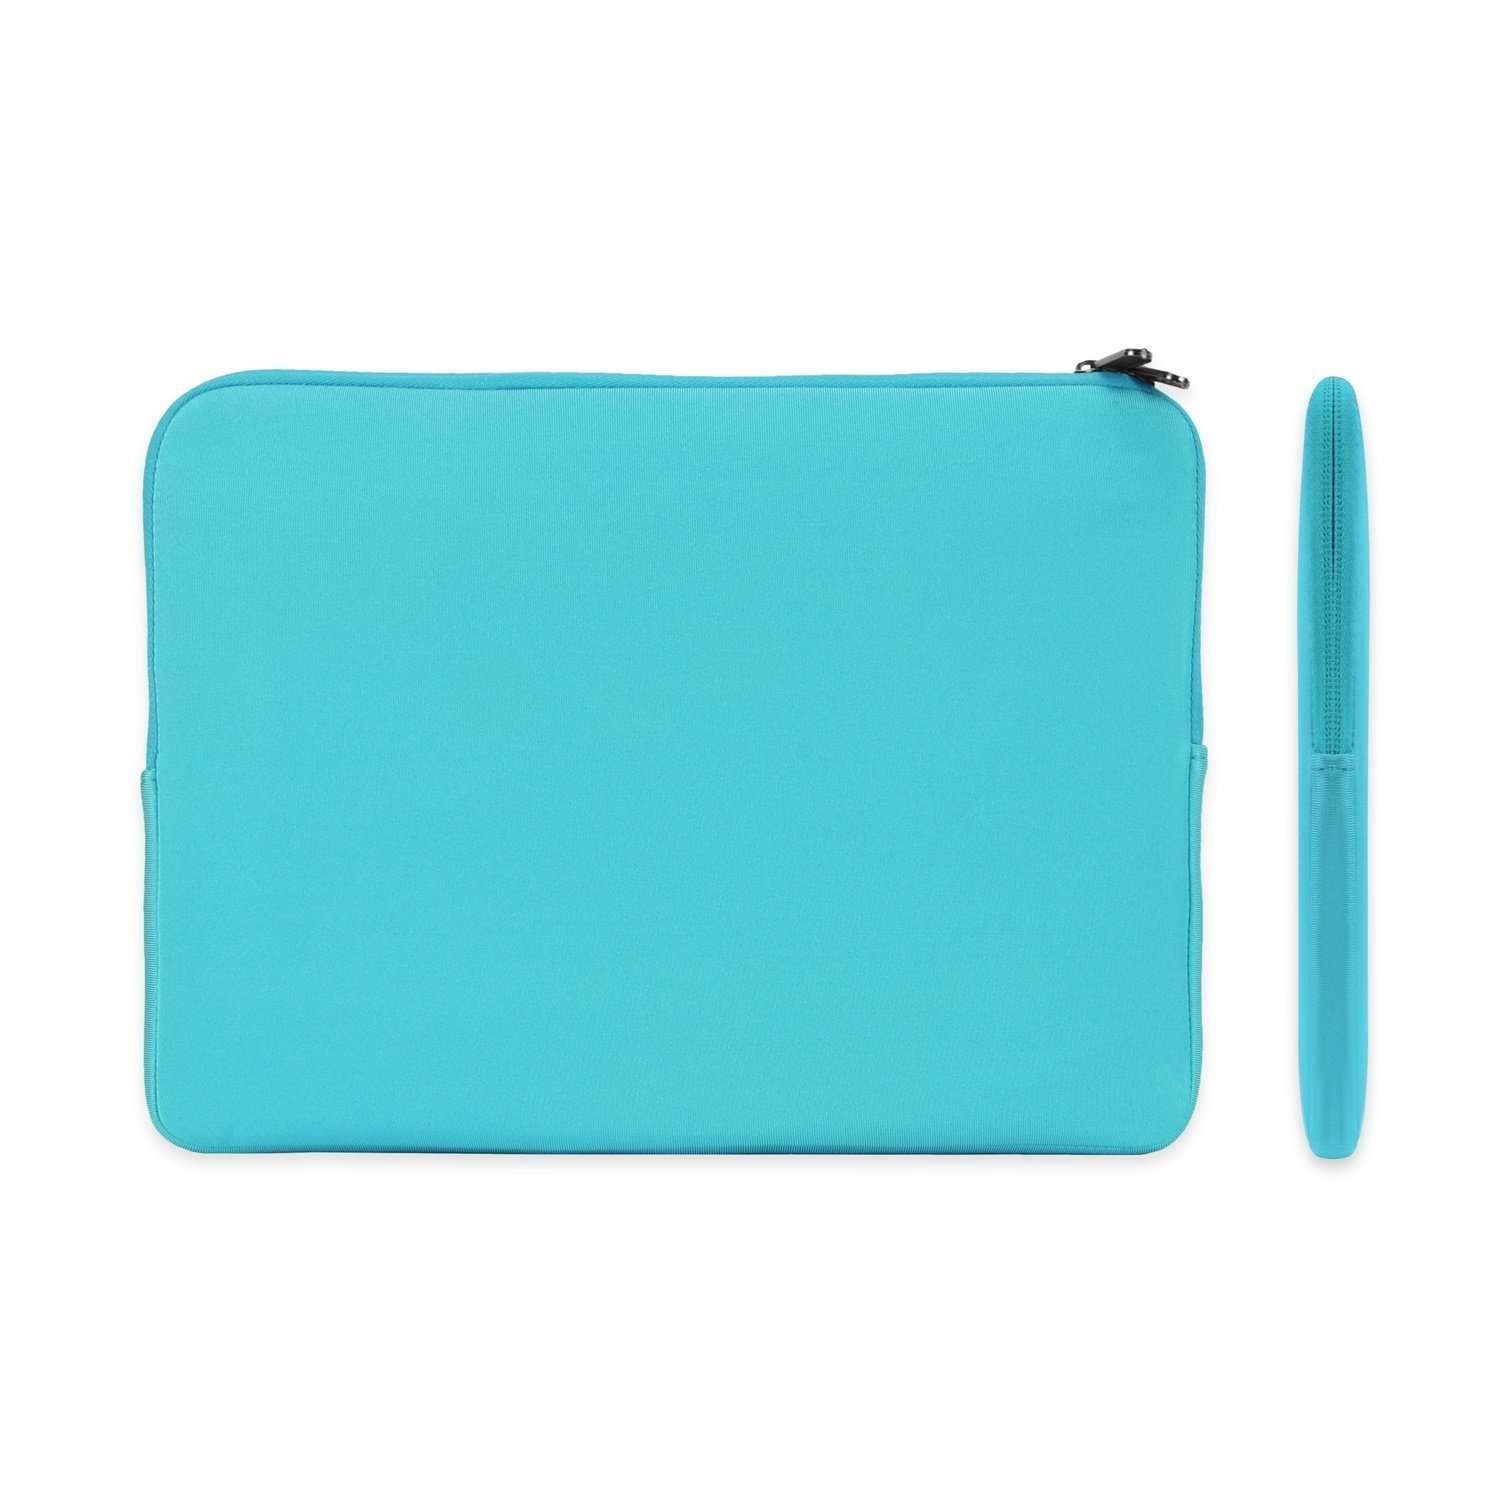 """TOP CASE - Zipper Sleeve Bag Case Compatible with MacBook Air 13"""" Retina Display and Touch ID A1932 (2018 Release) & MacBook Pro 13"""" A1989 / A1706 / A1708 (Release 2018, 2017, 2016) - Aqua Blue"""